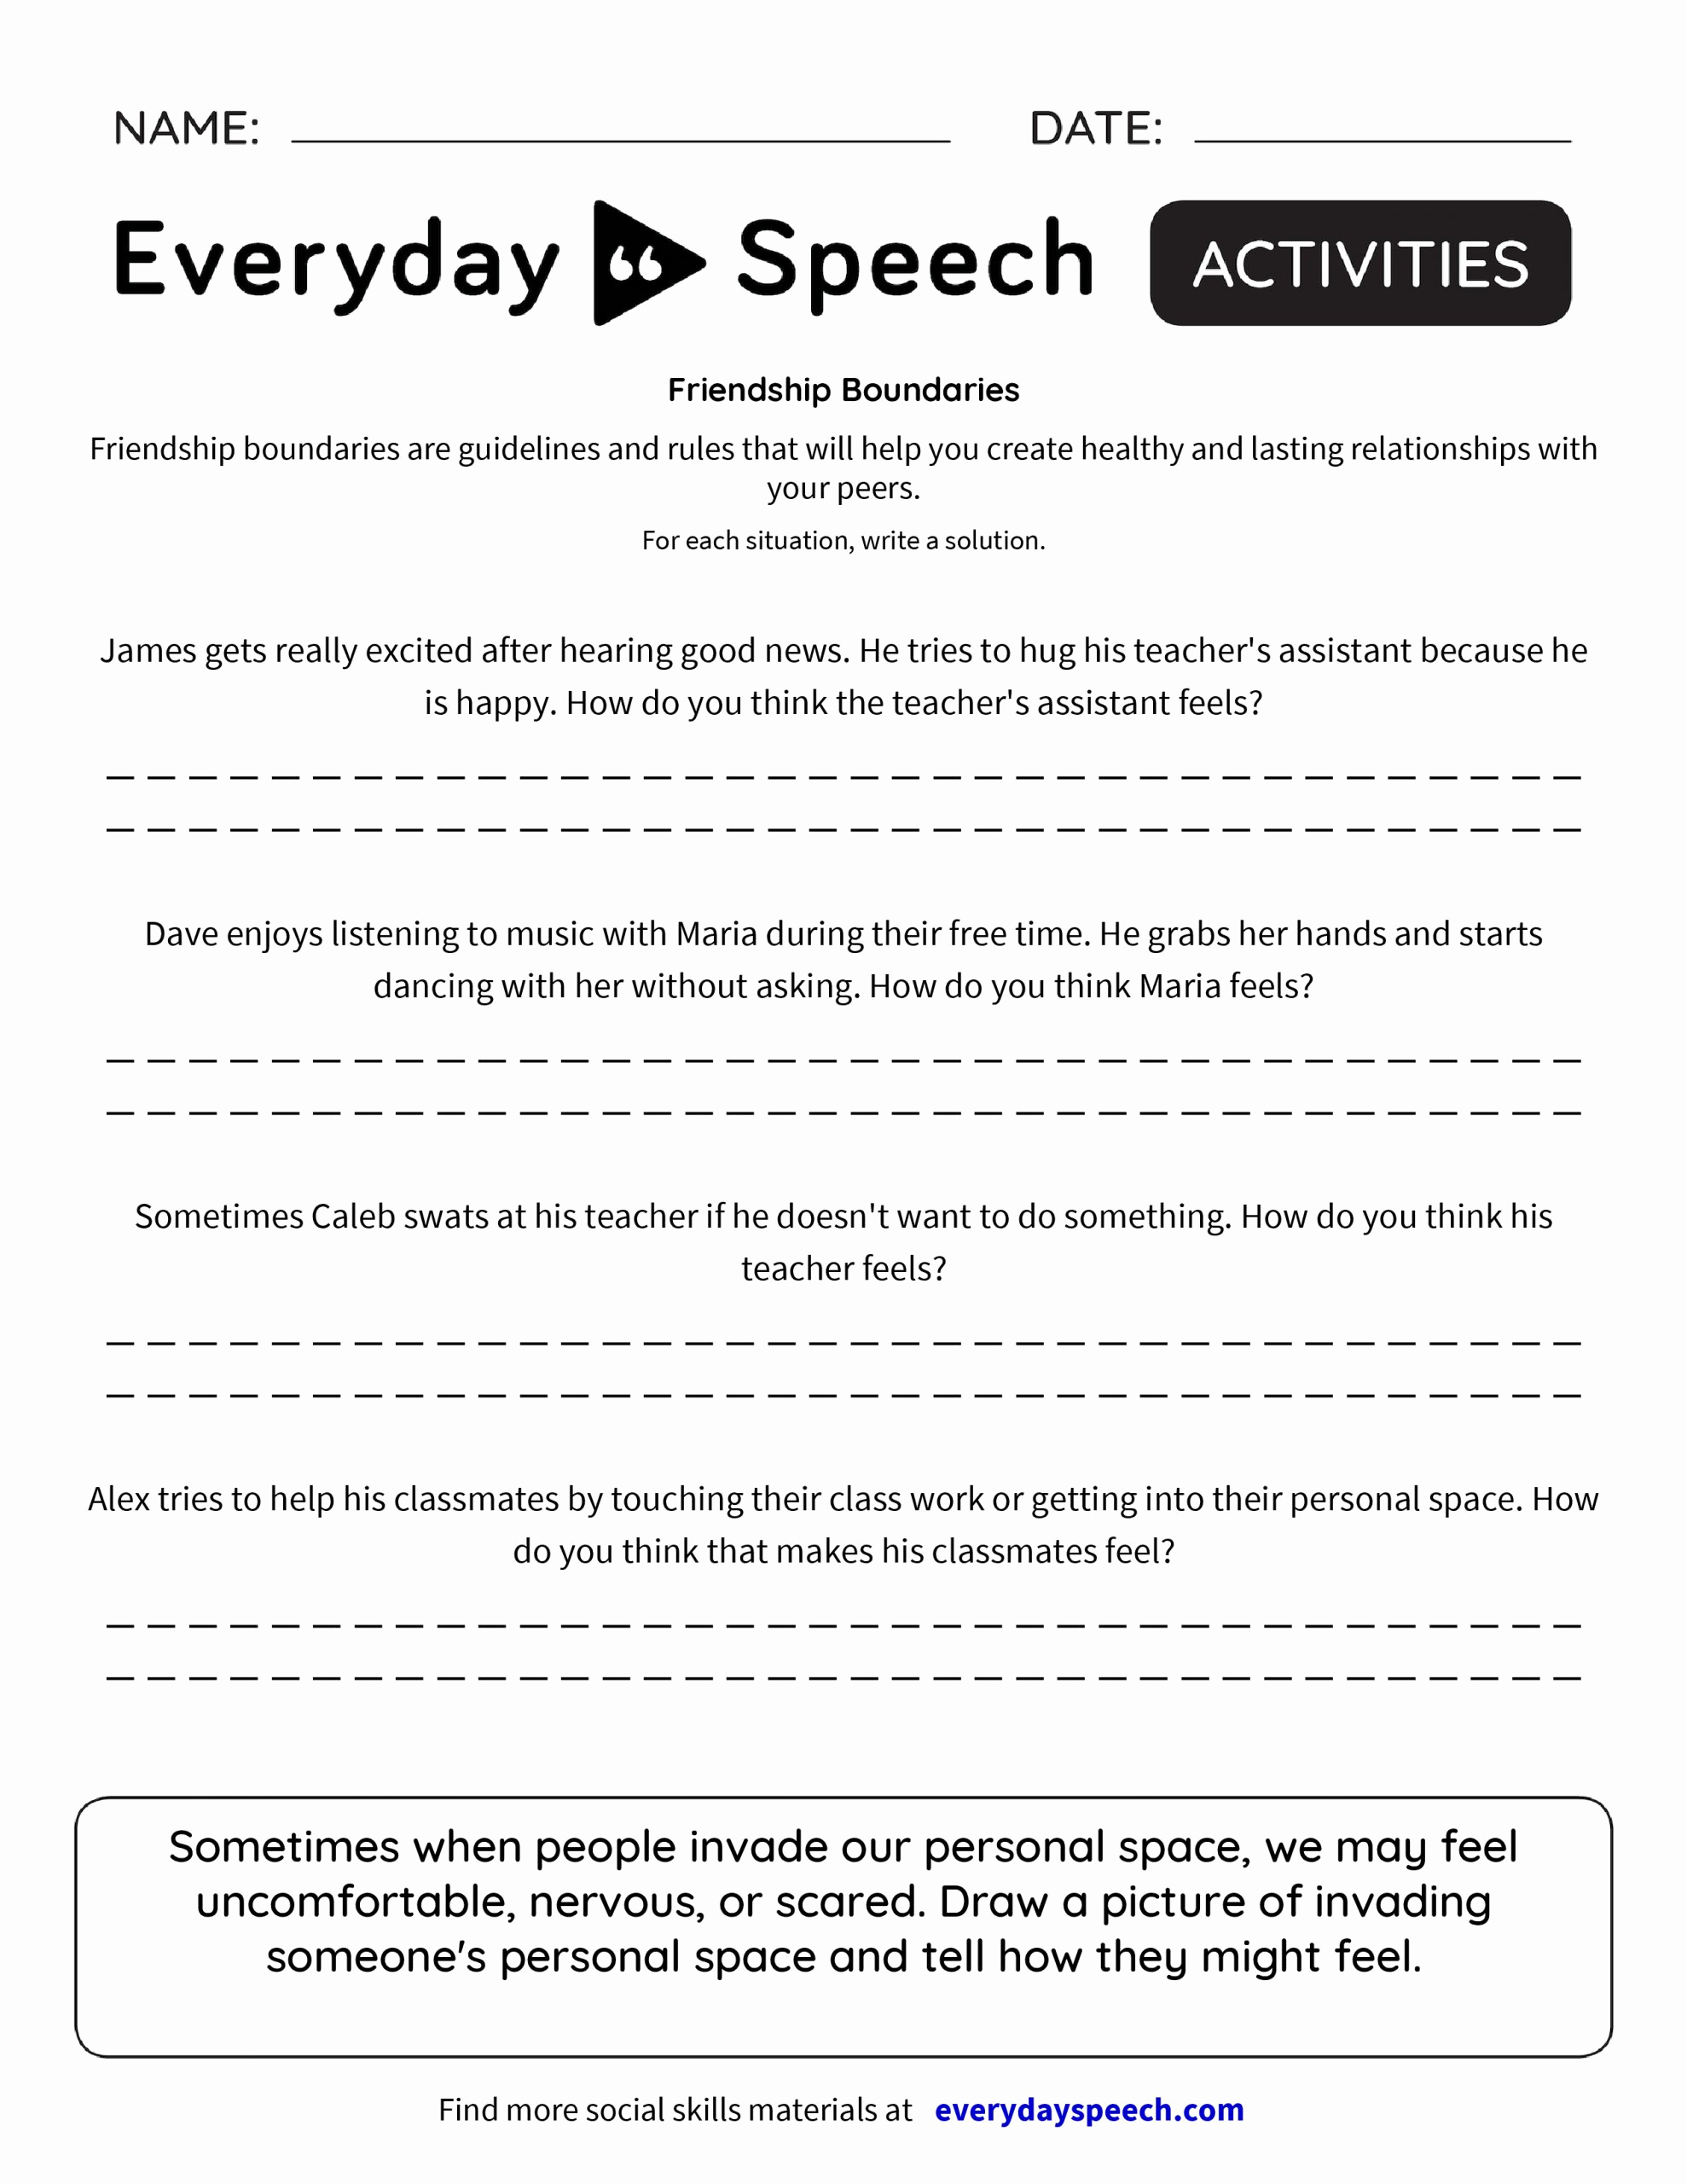 Healthy Relationships Worksheets New 30 Healthy Relationships Worksheets